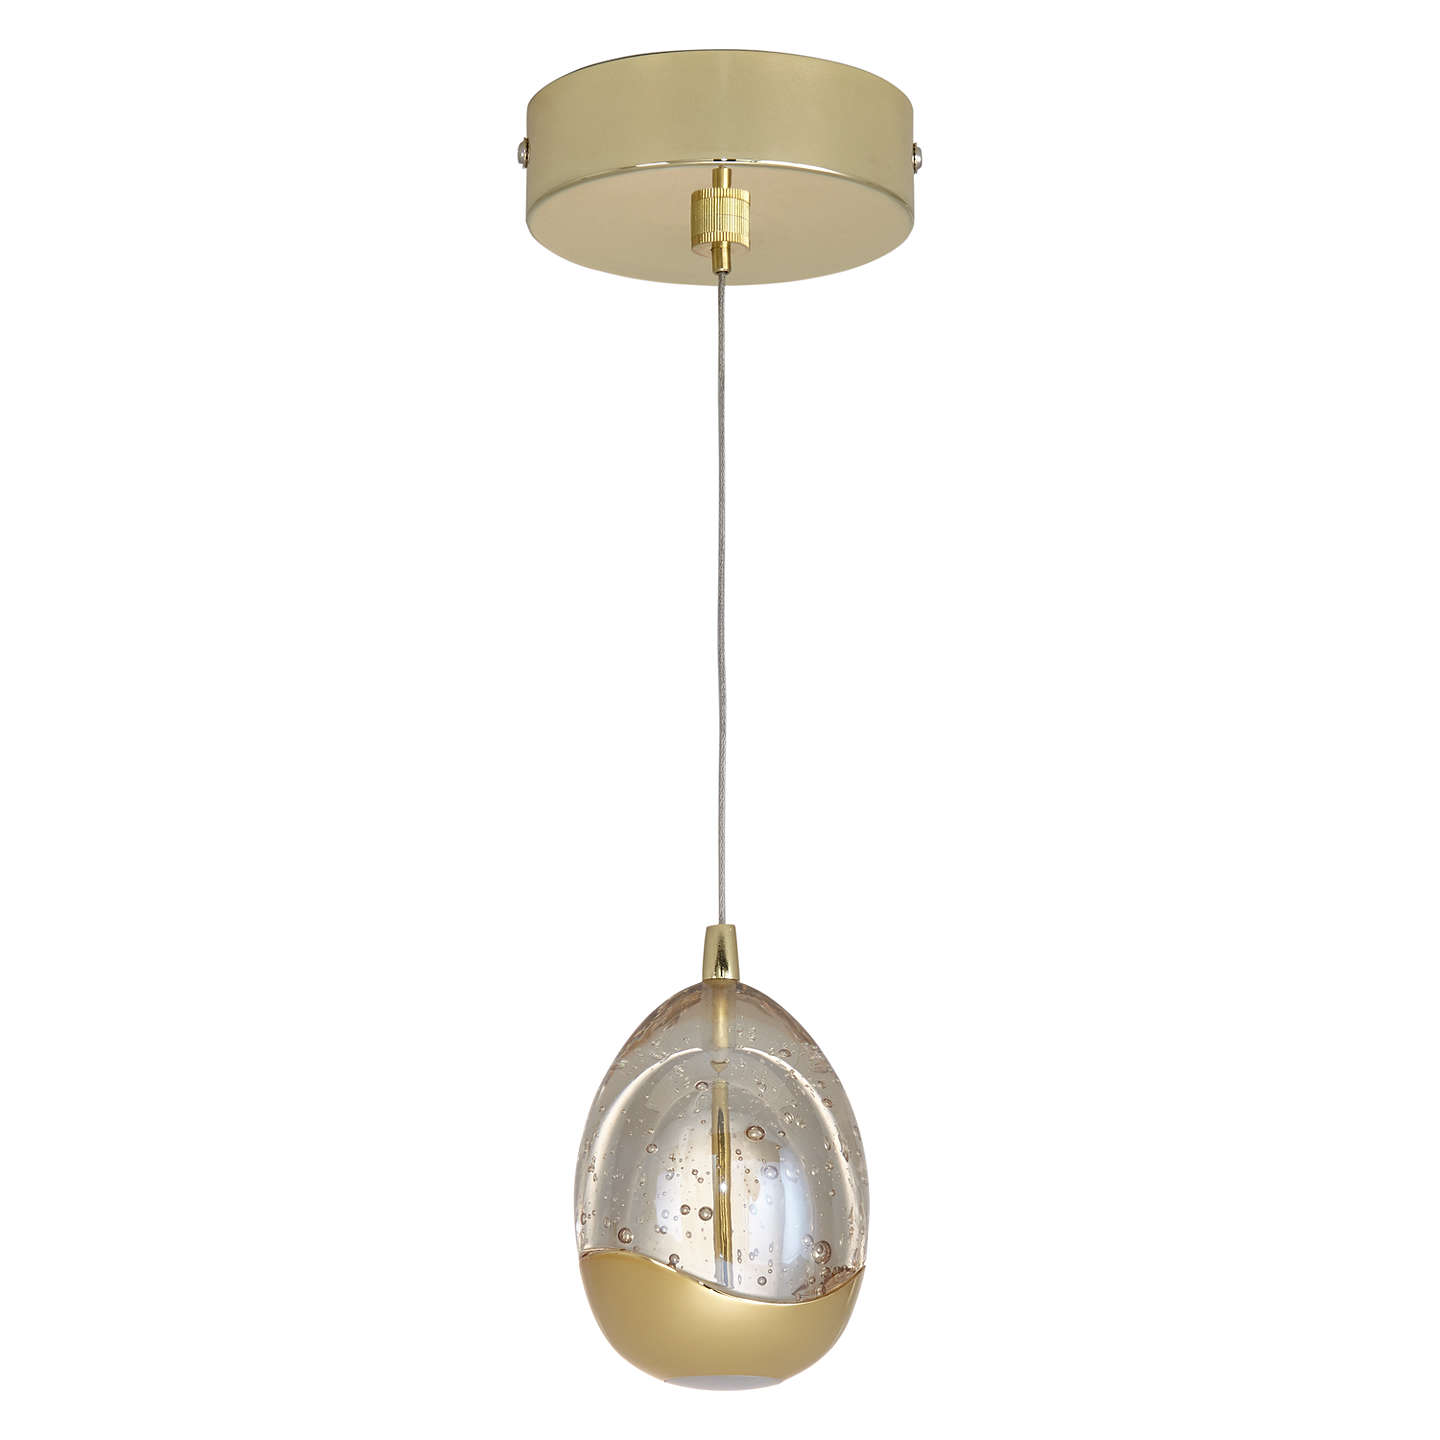 BuyJohn Lewis Droplet LED Single Pendant Ceiling Light, Satin Gold Online at johnlewis.com